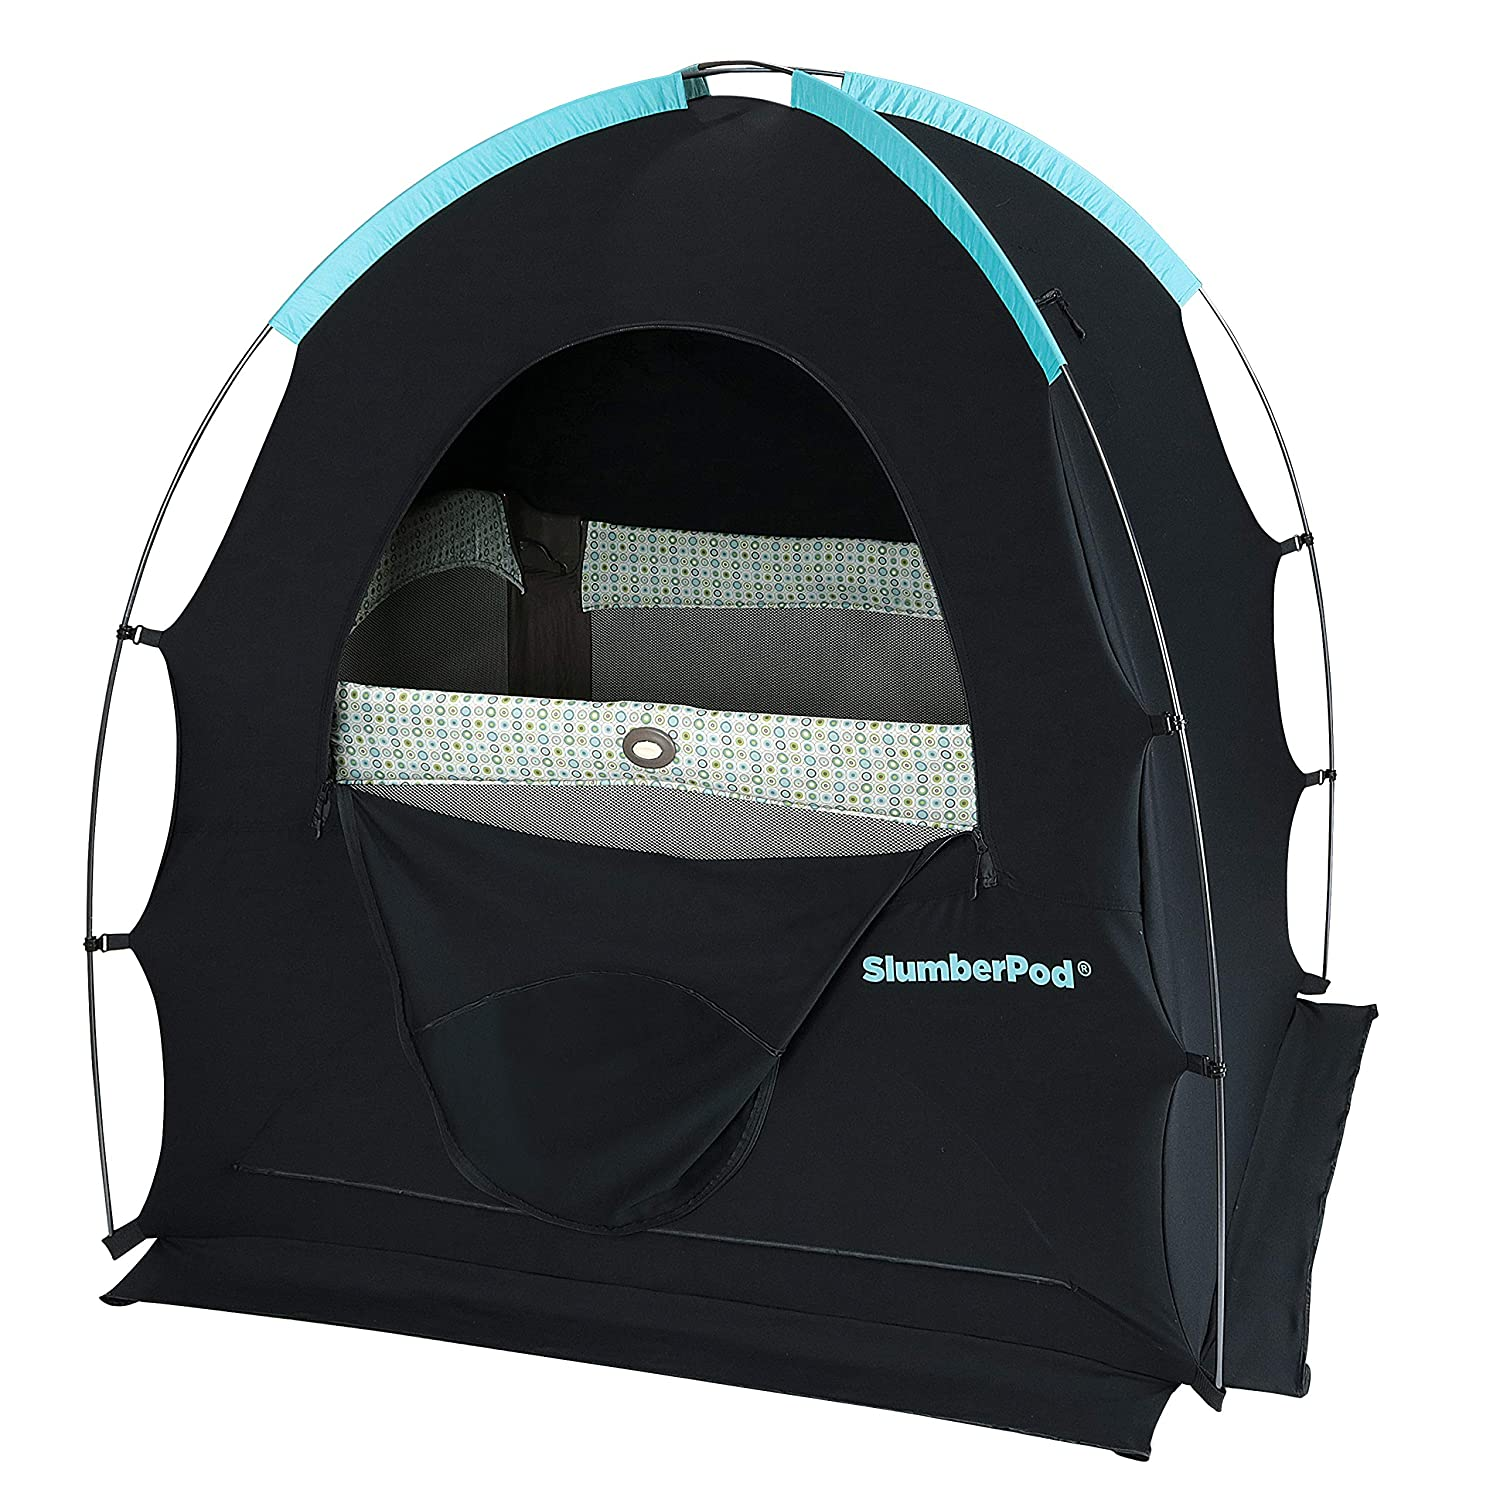 The SlumberPod Privacy Pod for Traveling travel product recommended by Mary Bryant on Lifney.